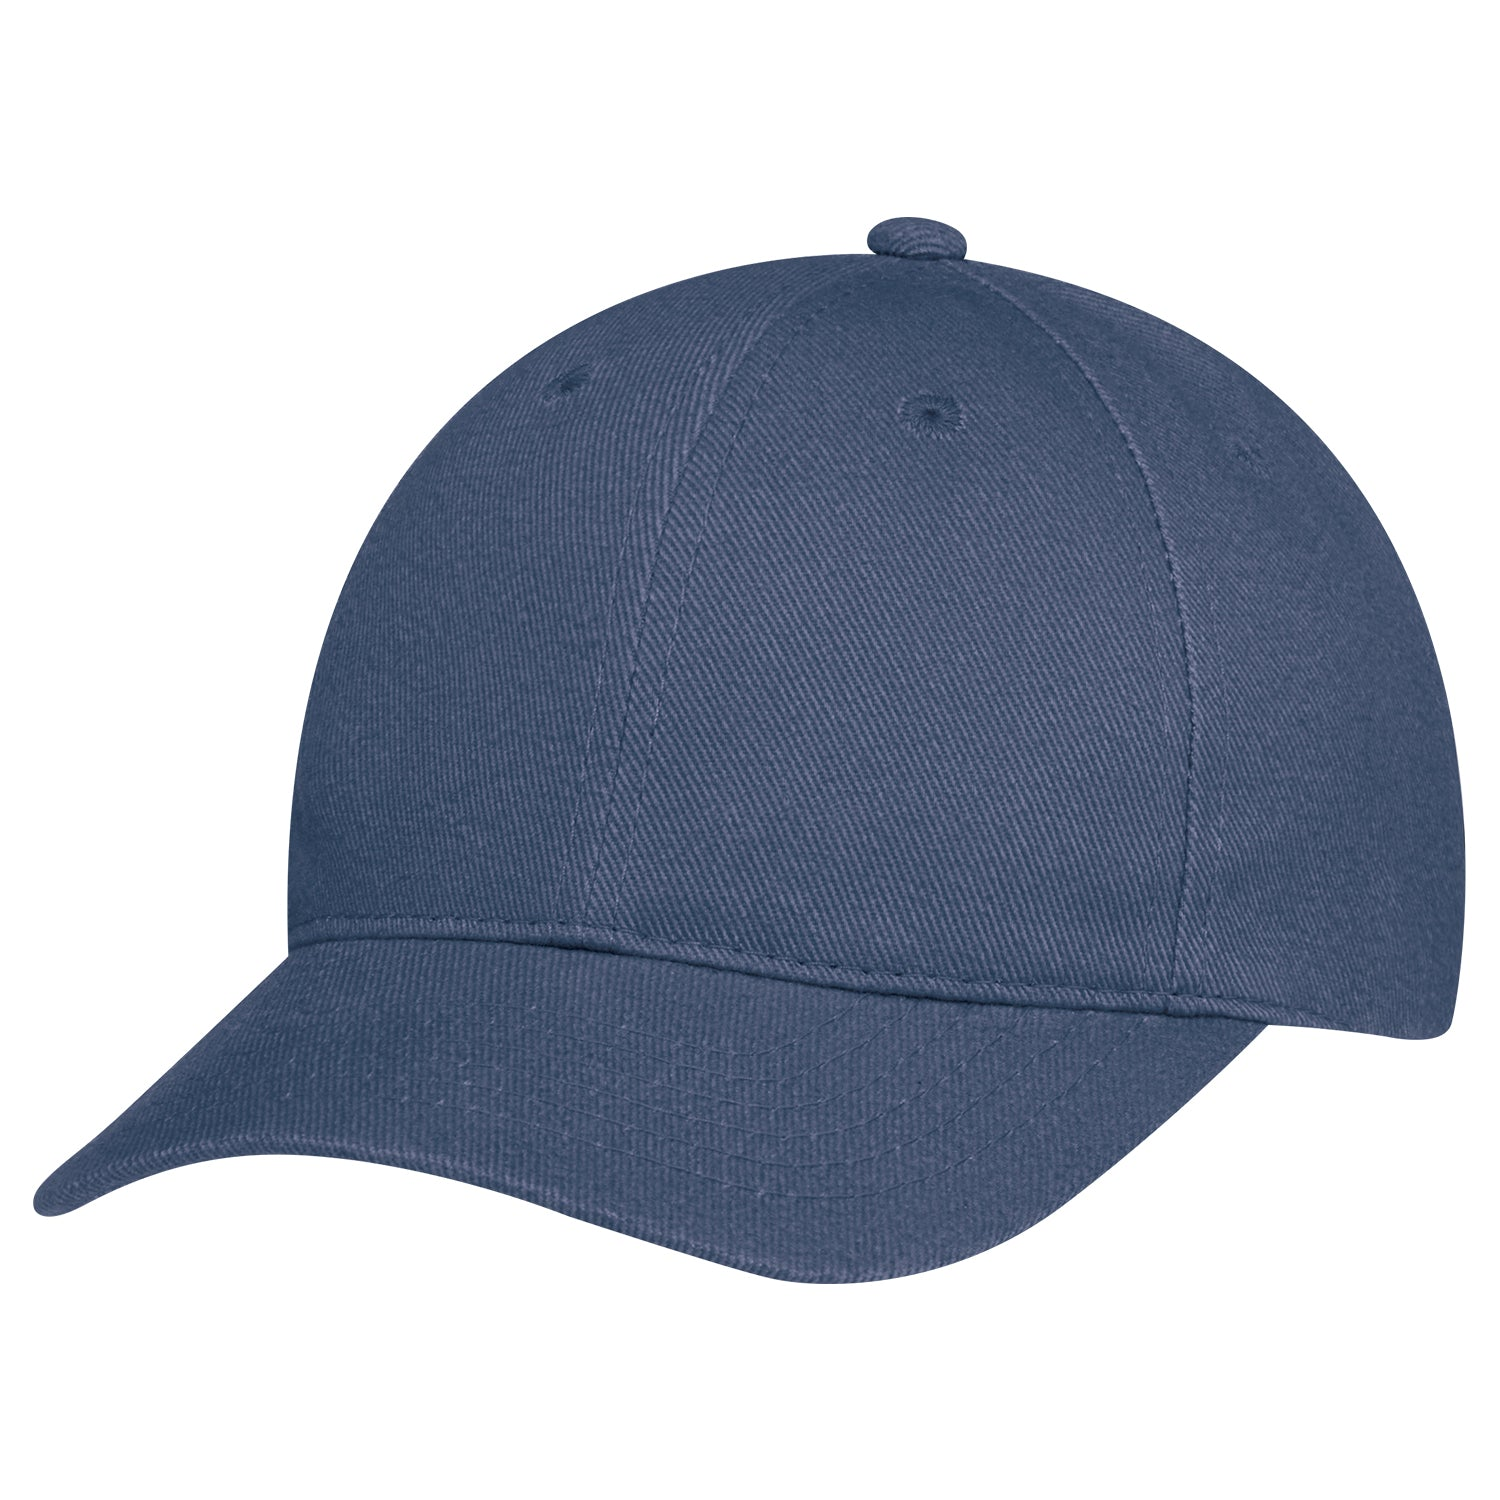 STOCK HEAVYWEIGHT BRUSHED COTTON DRILL HAT